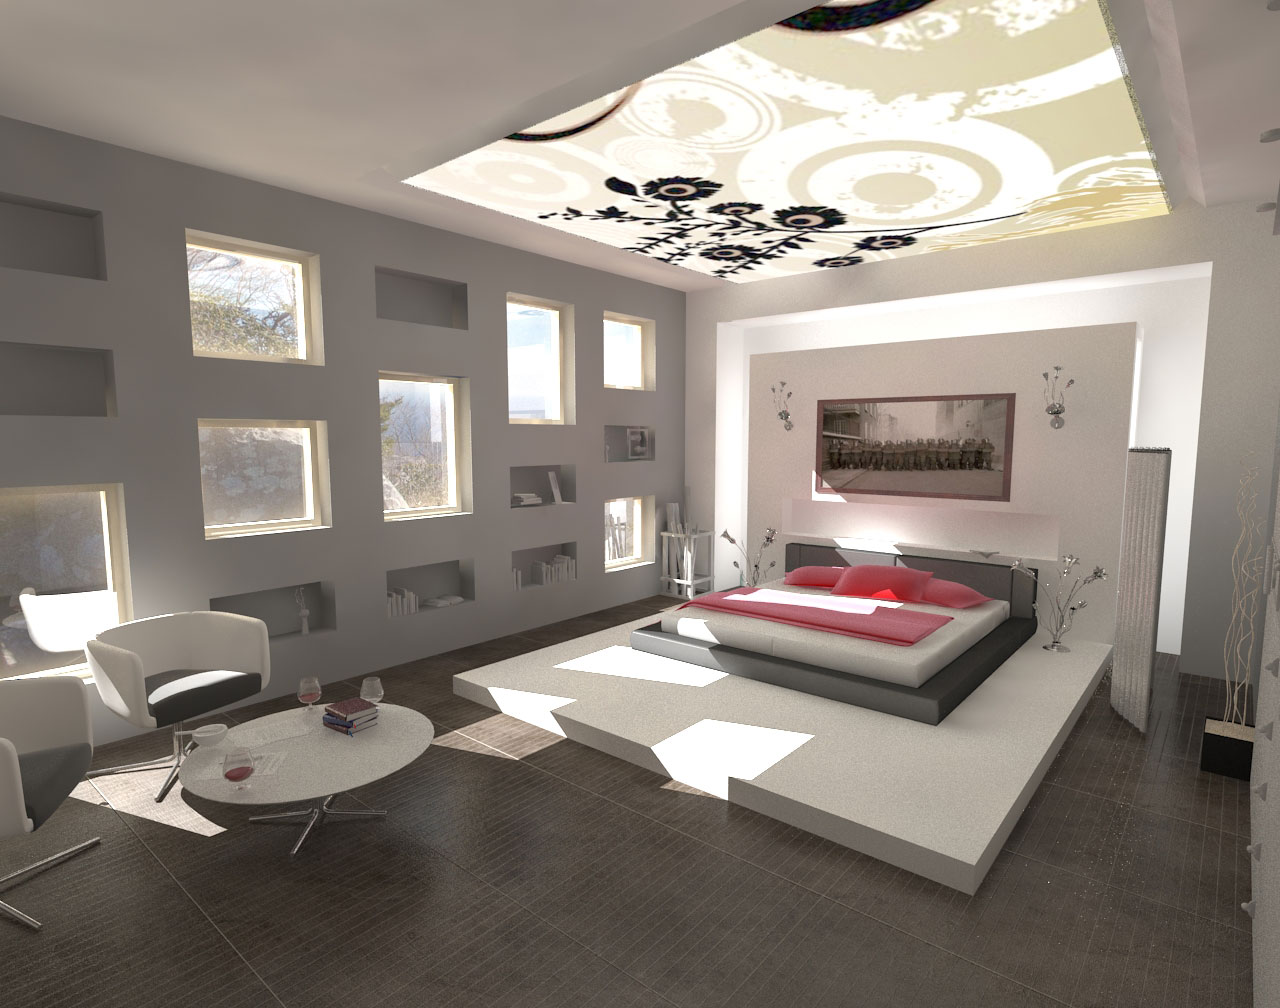 Decorations: Minimalist Design - Modern Bedroom Interior ... on Minimalist Modern Simple Bedroom Design  id=91865